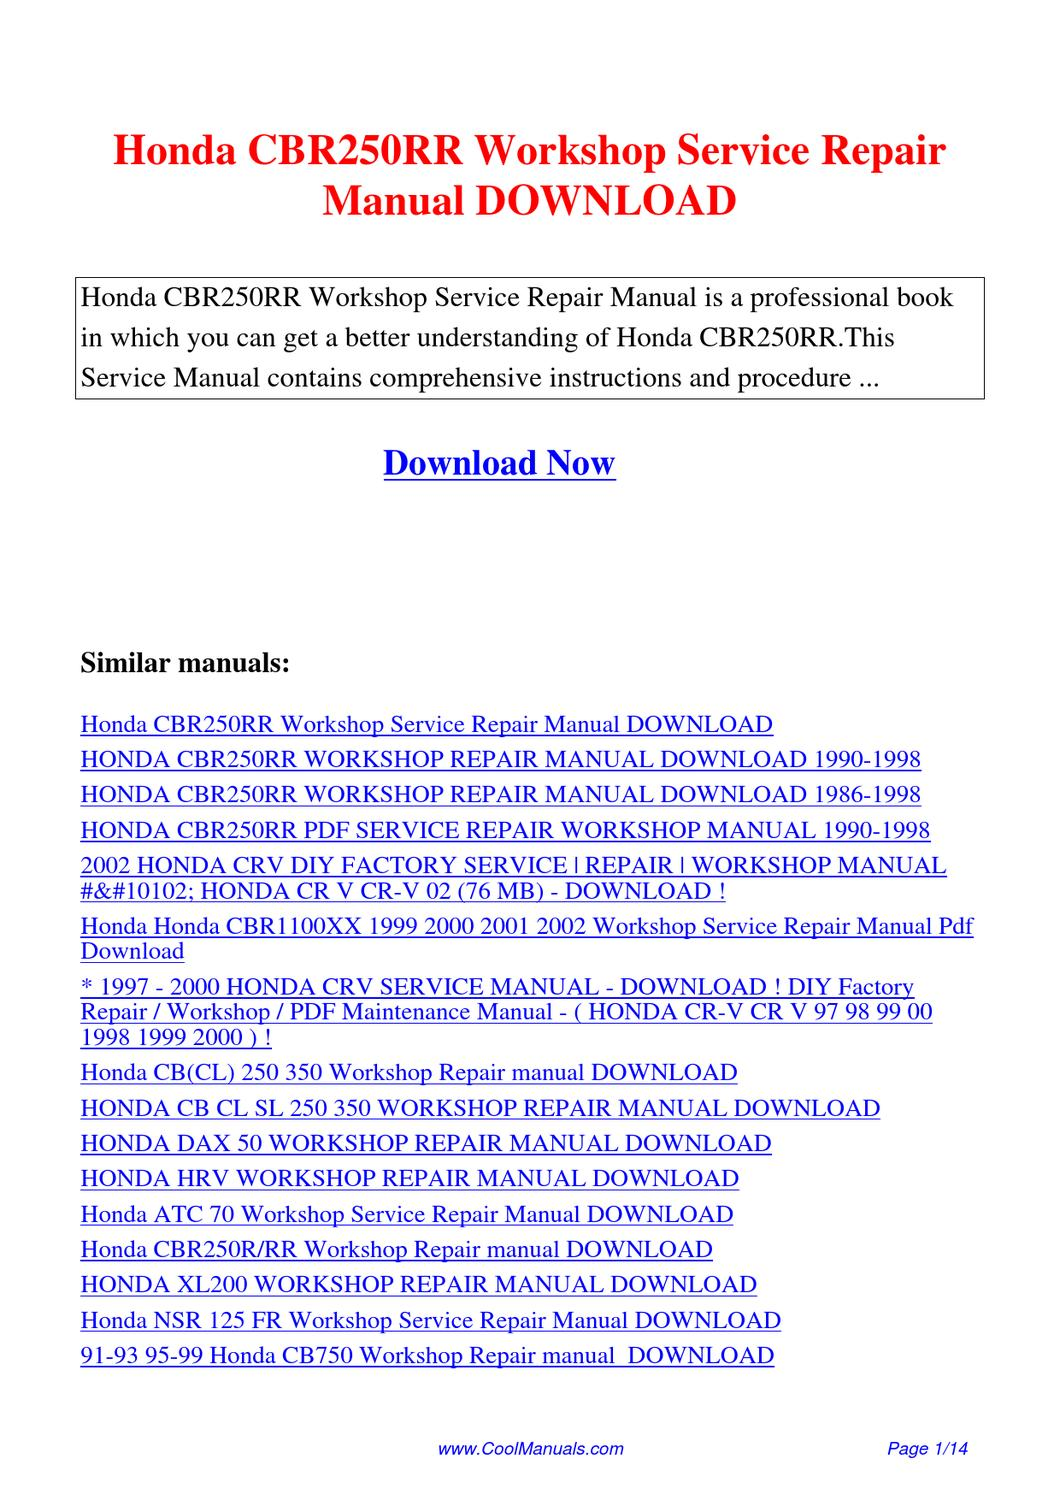 honda cbr250rr workshop service repair manual by lan huang